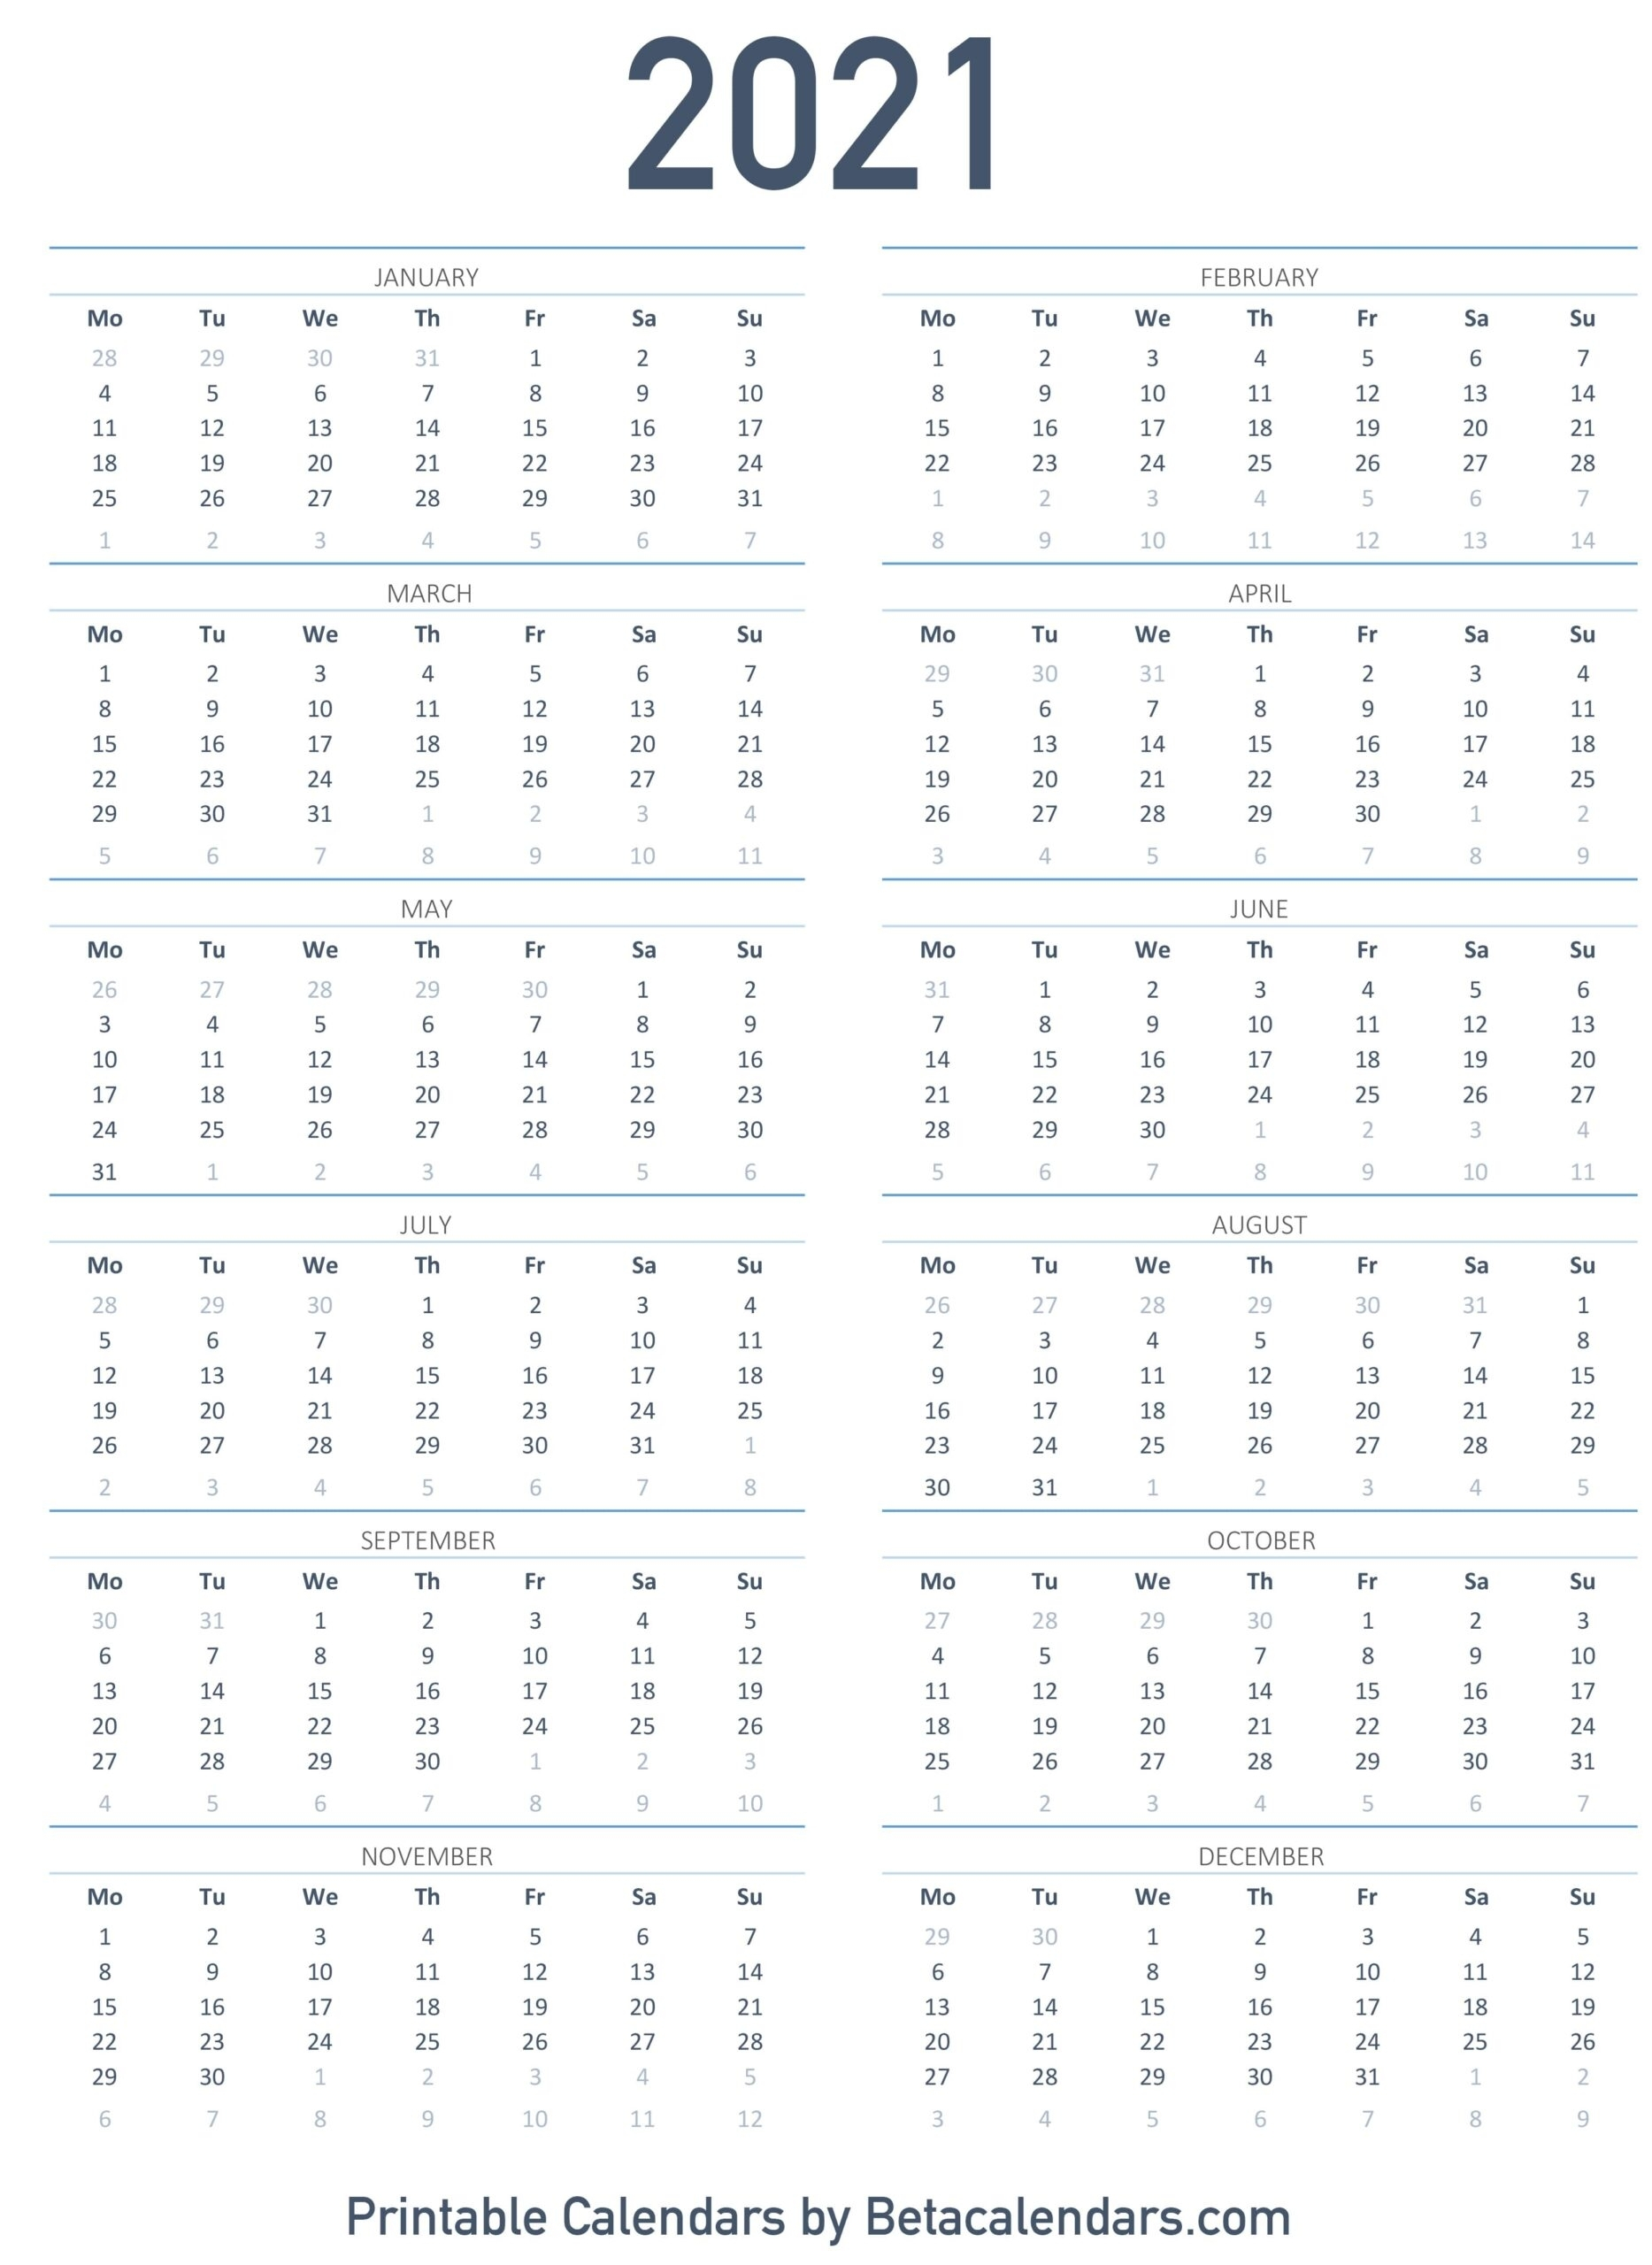 Printable Calendar 2021 | Download & Print Free Blank Calendars